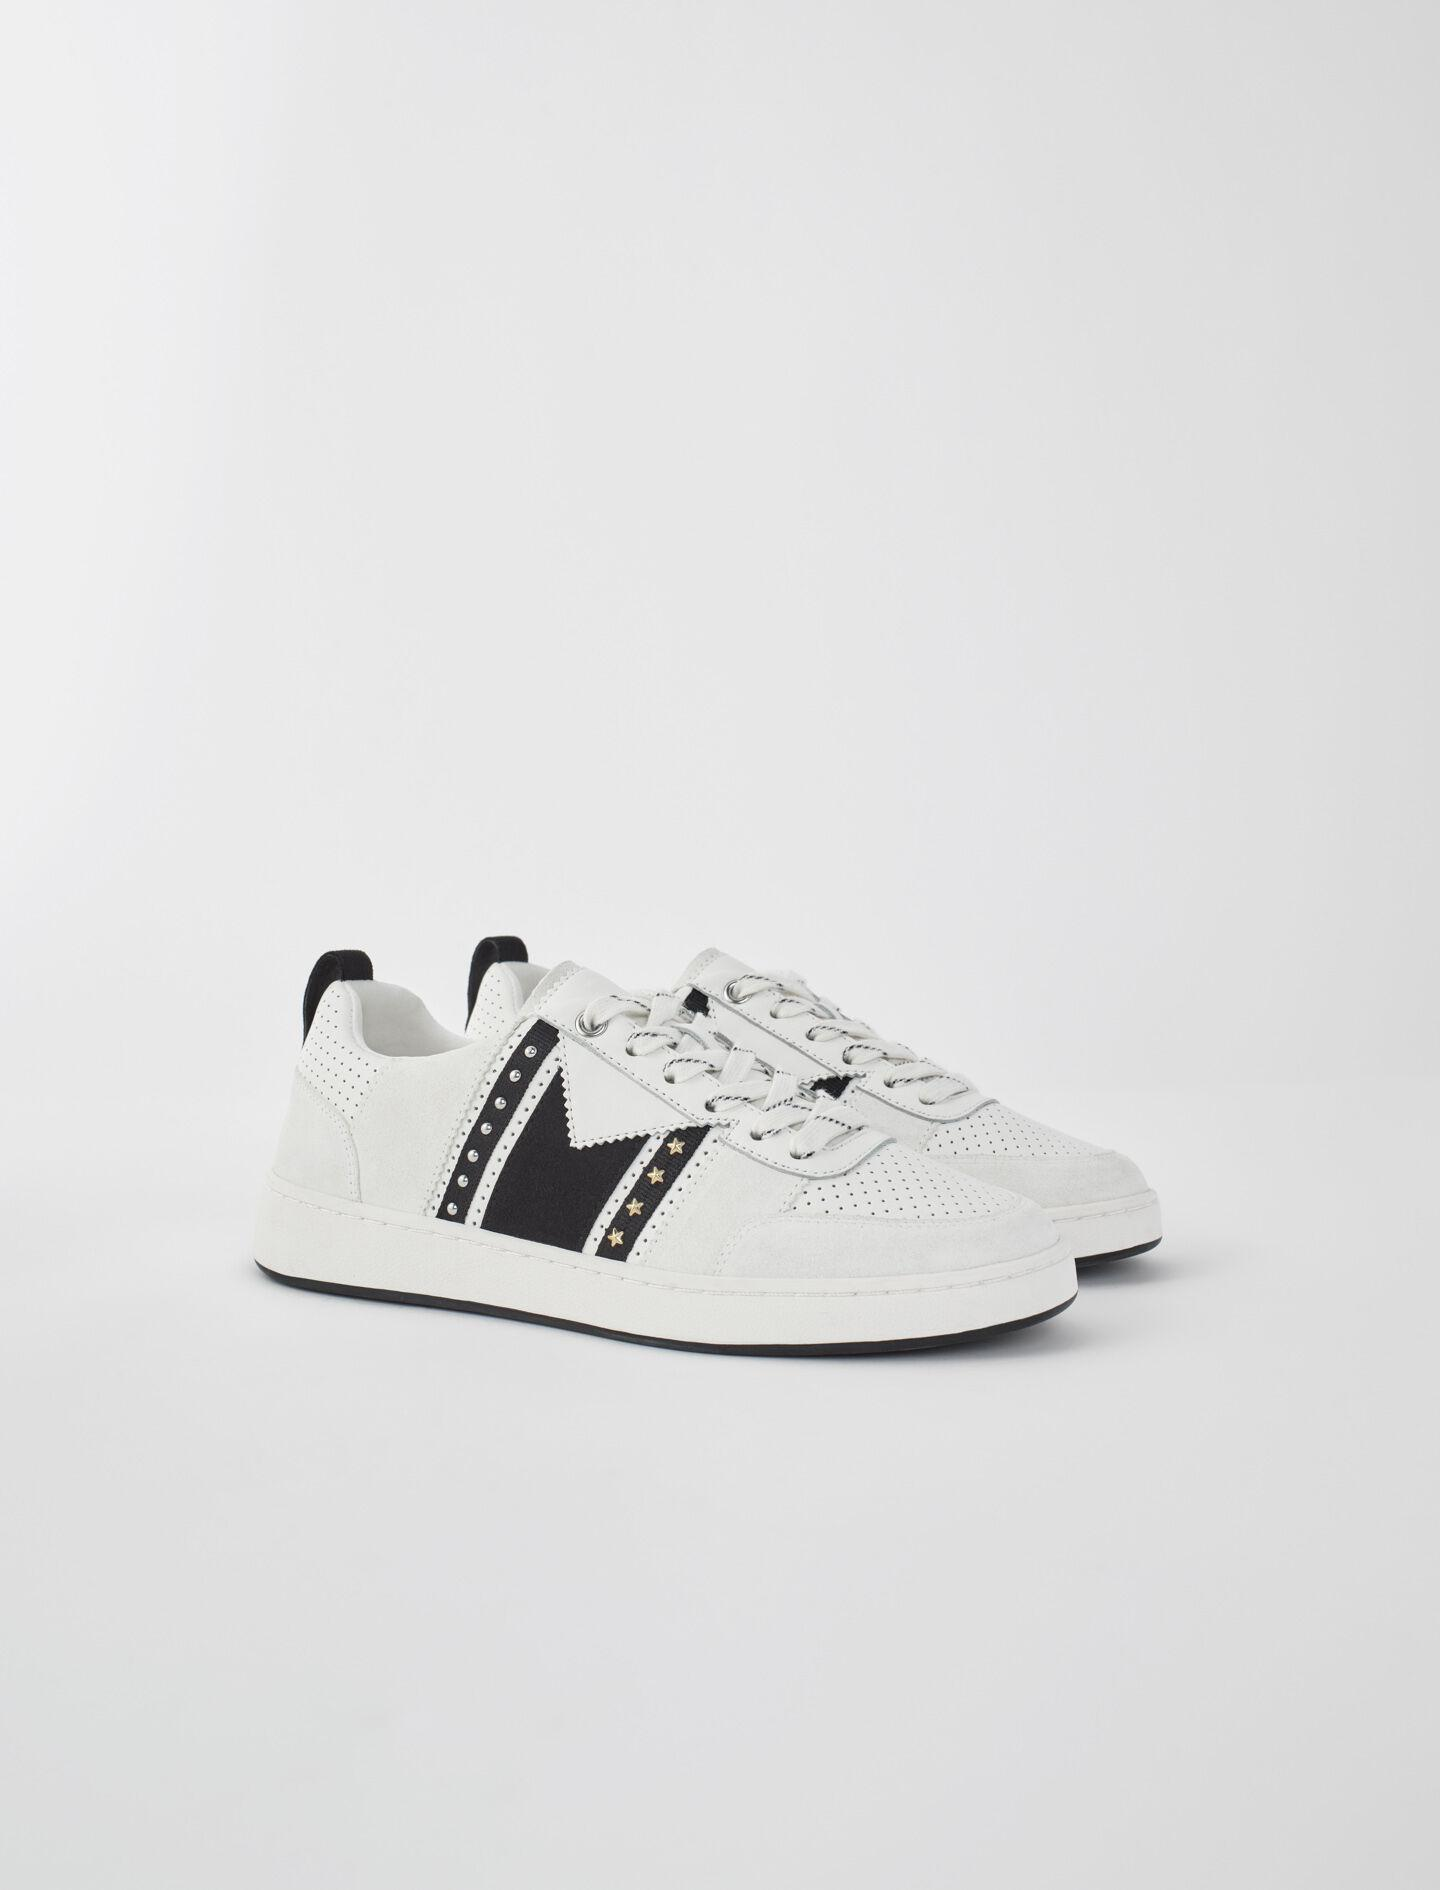 BLACK AND WHITE LEATHER SNEAKERS 2